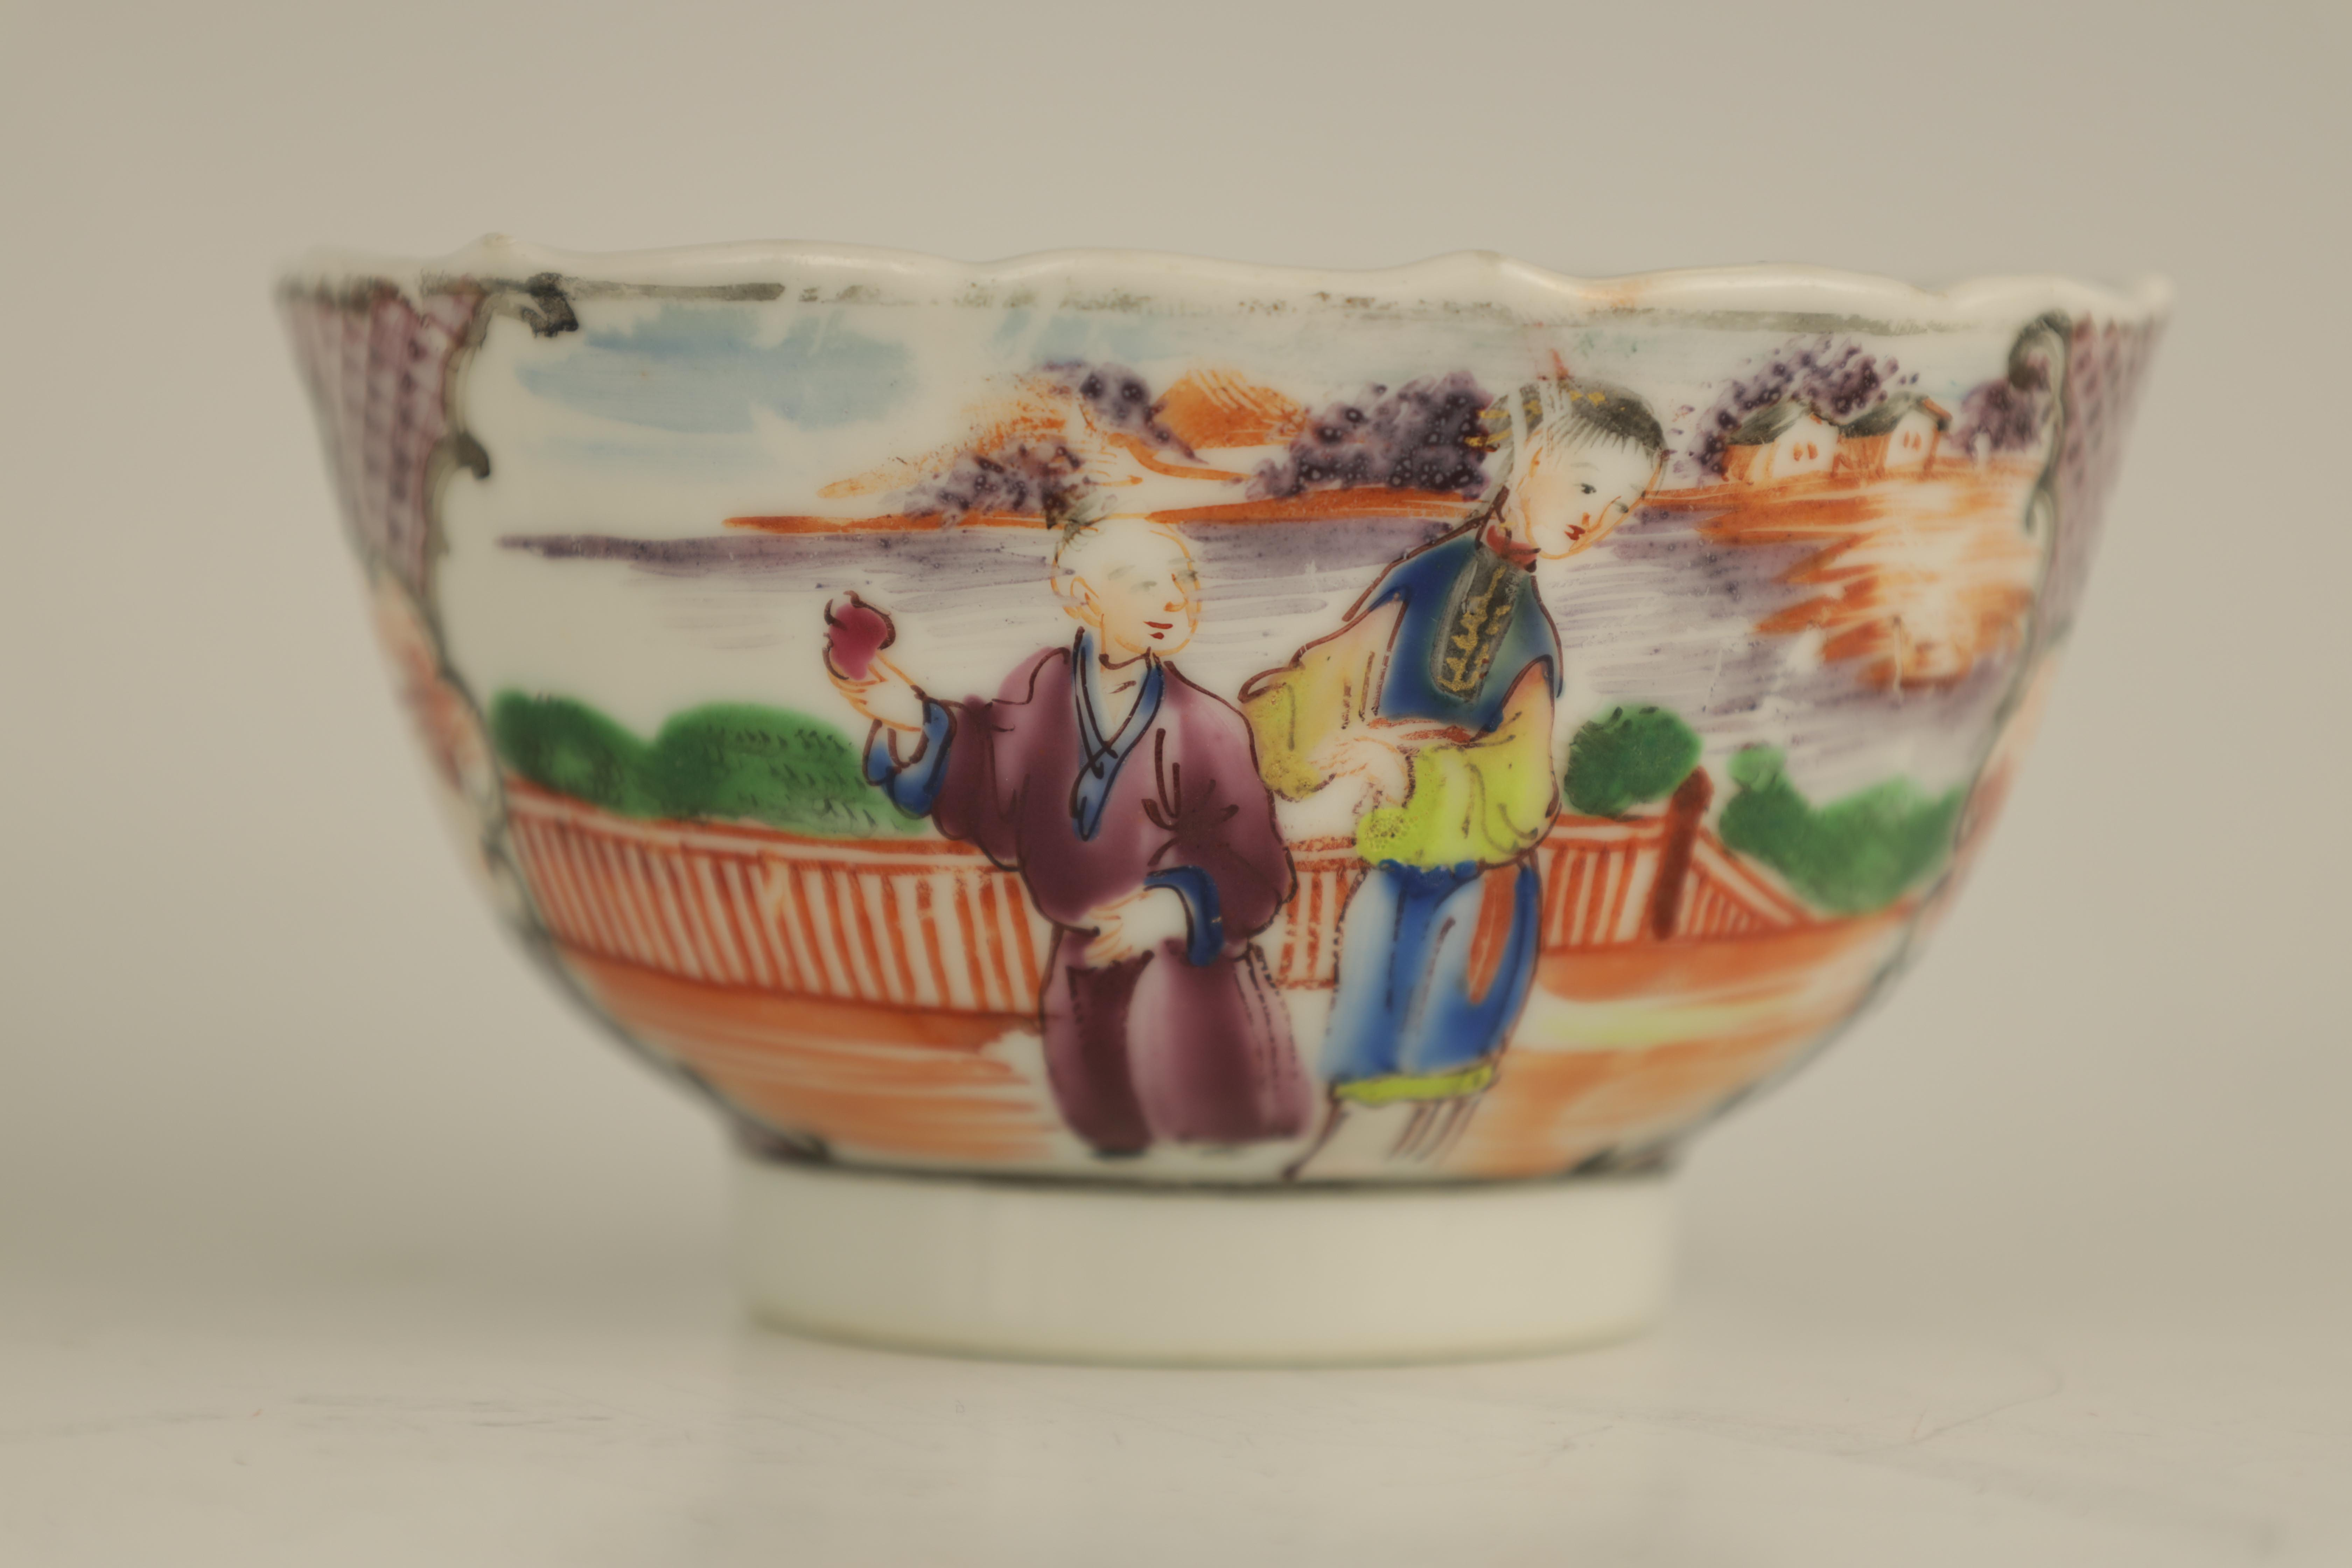 AN EARLY 19TH CENTURY NEW HALL PORCELAIN TEA CUP AND SAUCER decorated in 'The Boy in the Window' - Image 5 of 7